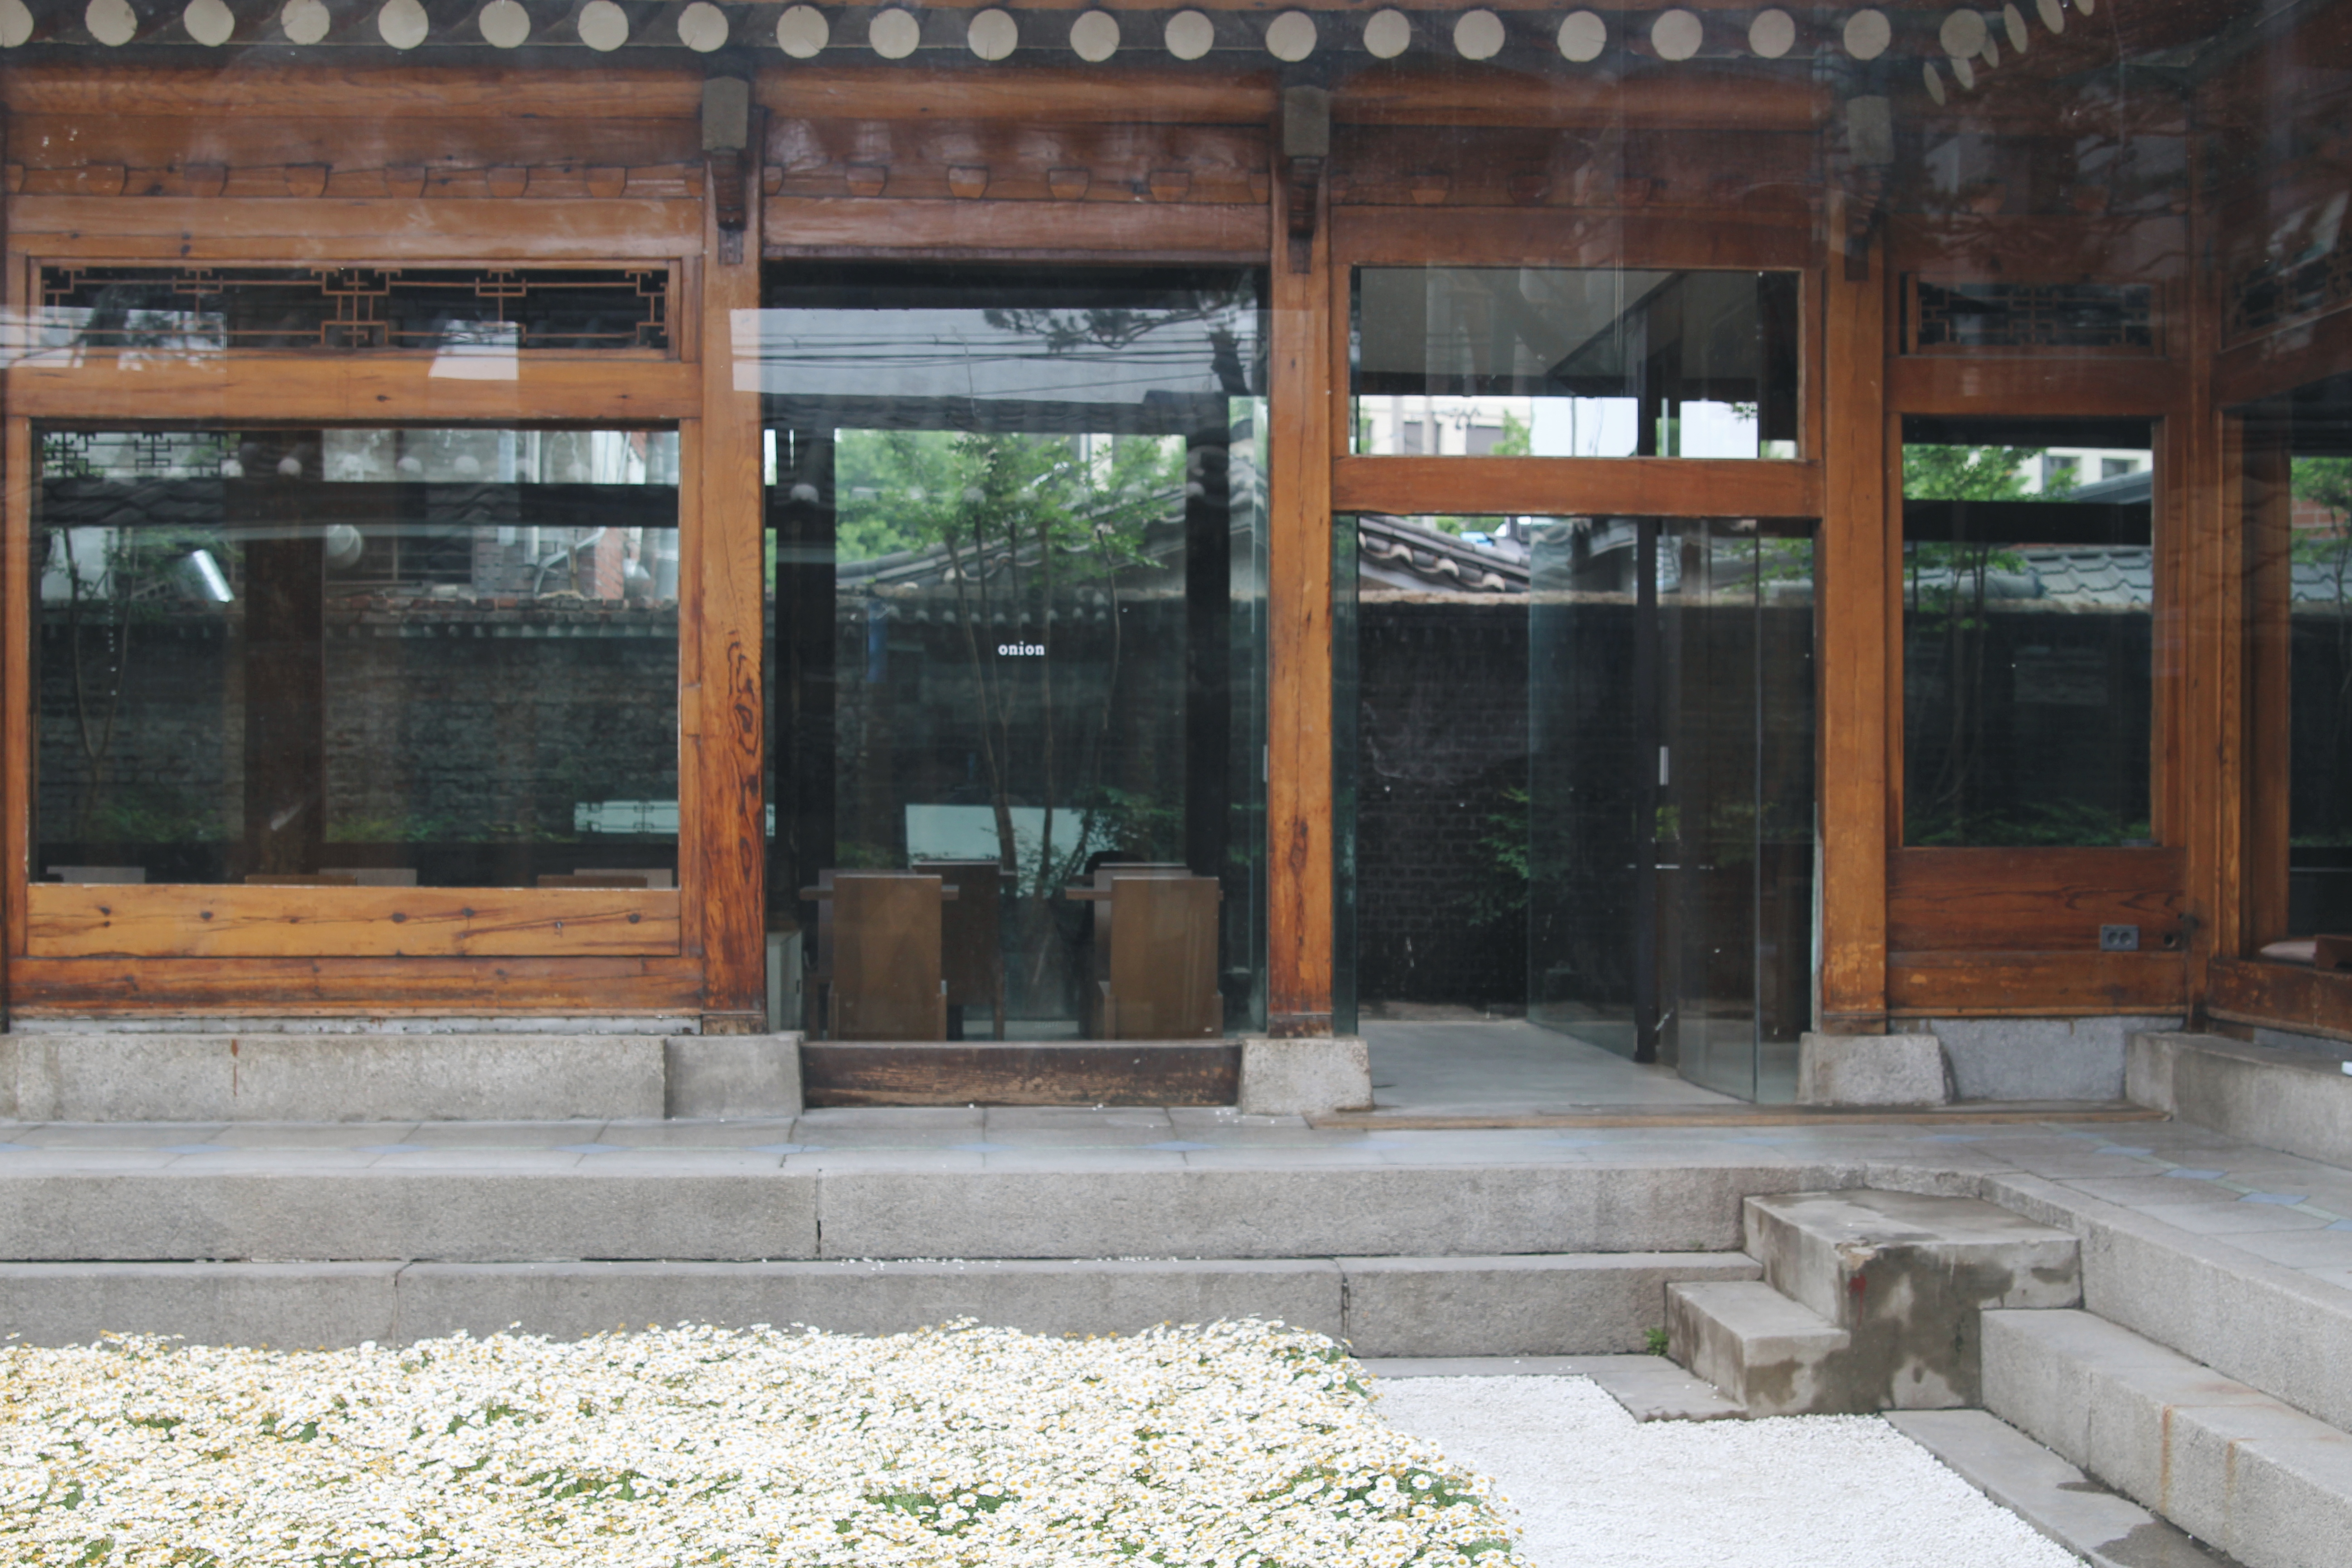 A quiet morning at Onion, so it is empty. There is a flower bed, and behind it a section for seating with tables separated by a wooden structure and glass windows.